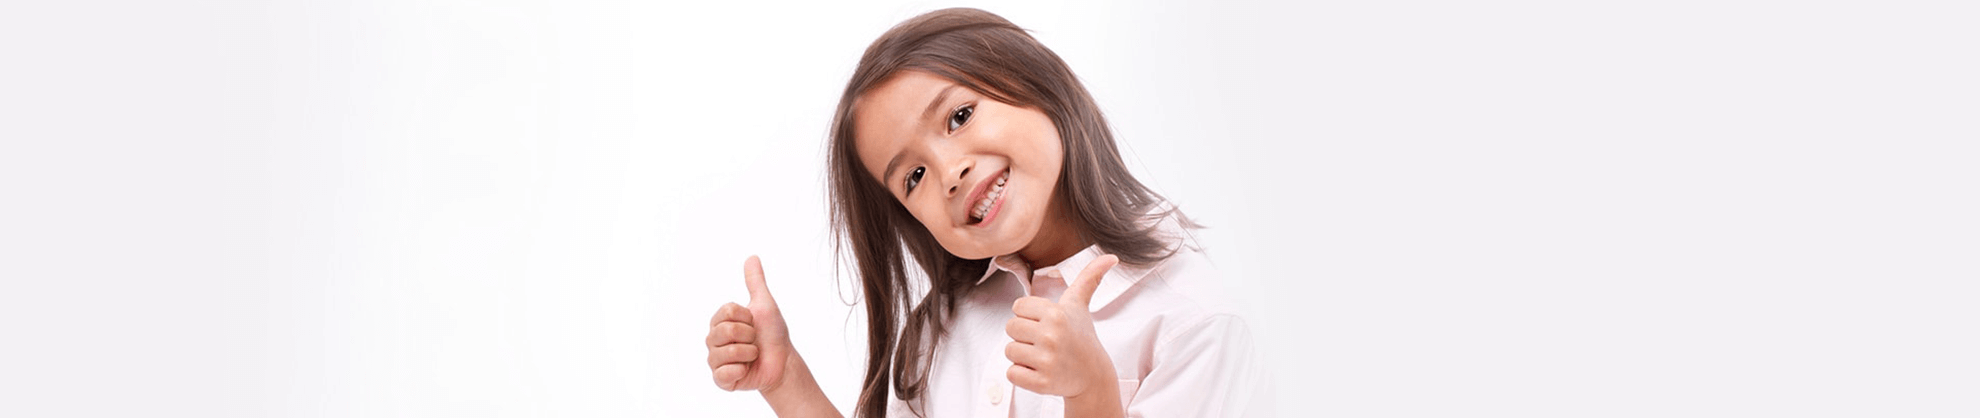 Pediatric Dentistry in Elk Grove and Sacramento,CA